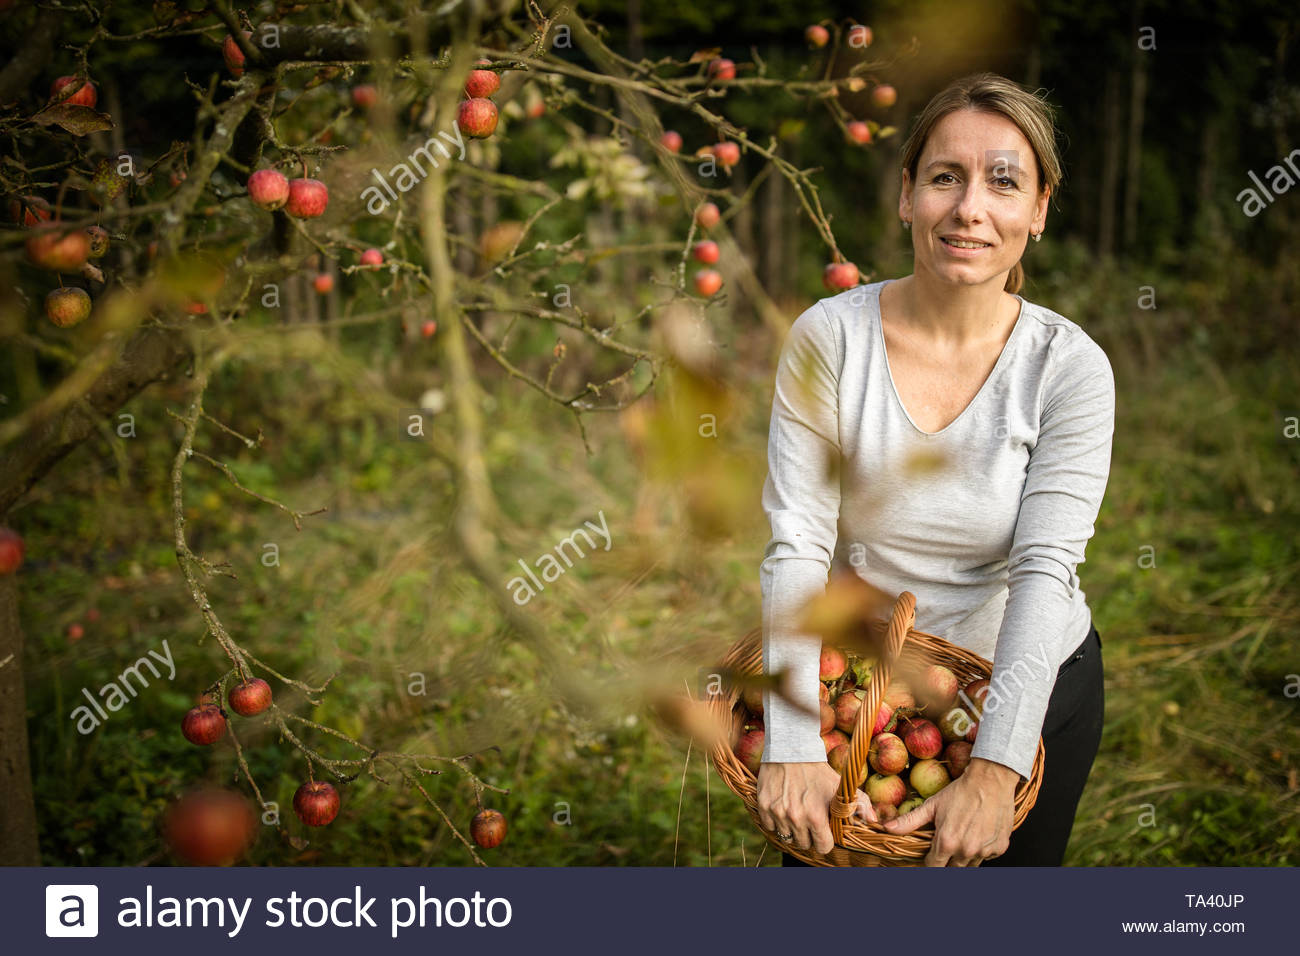 Middle aged woman picking apples in her orchard - soon there will be a lovely smell of apple pie in her kitchen (color toned image) - Stock Image